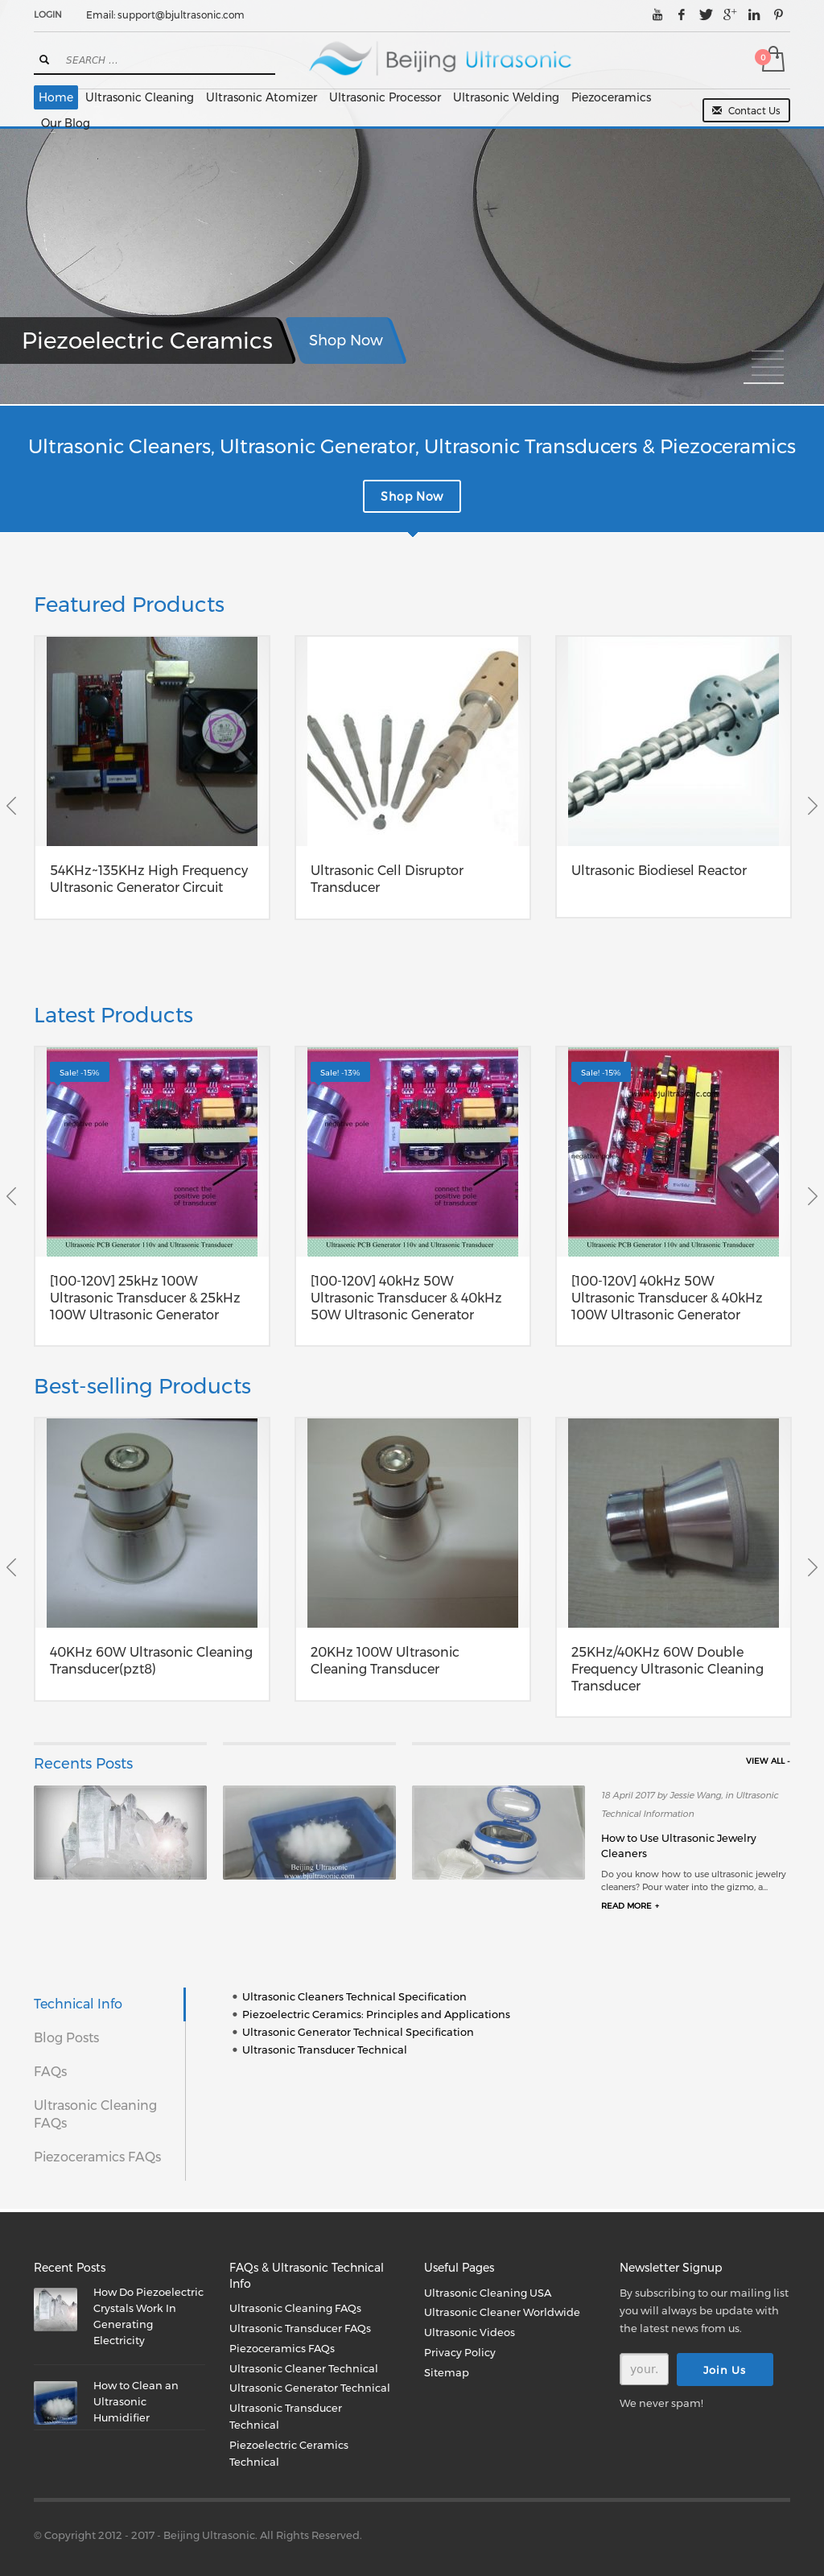 Ultrasonic Cleaning Competitors Revenue And Employees Owler Circuit Transmitter Cleaner Website History